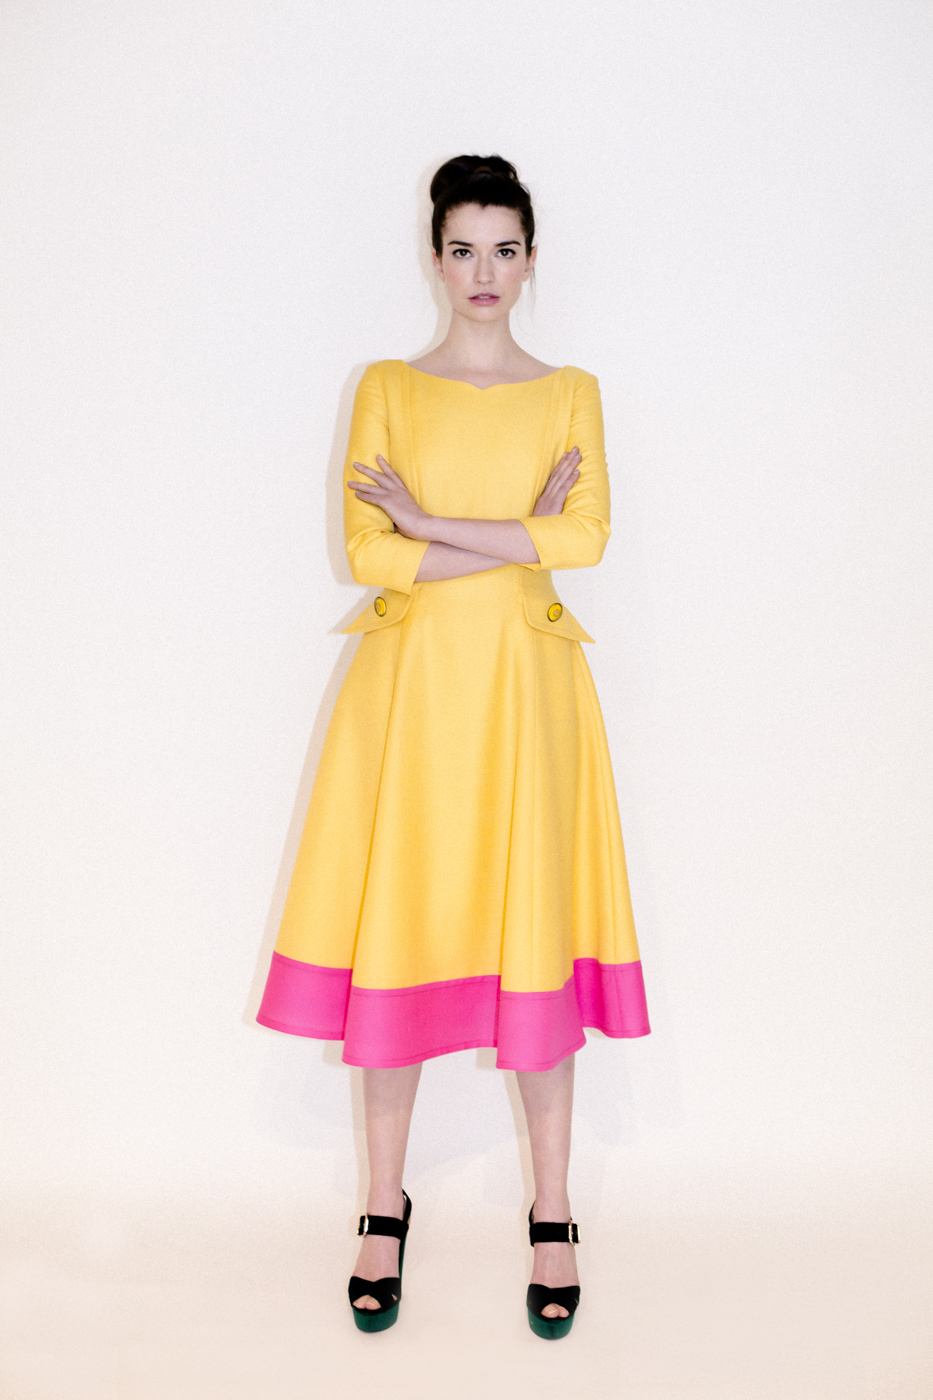 SS17: A Yellow Cocktail Dress with a Hot Pink Trim